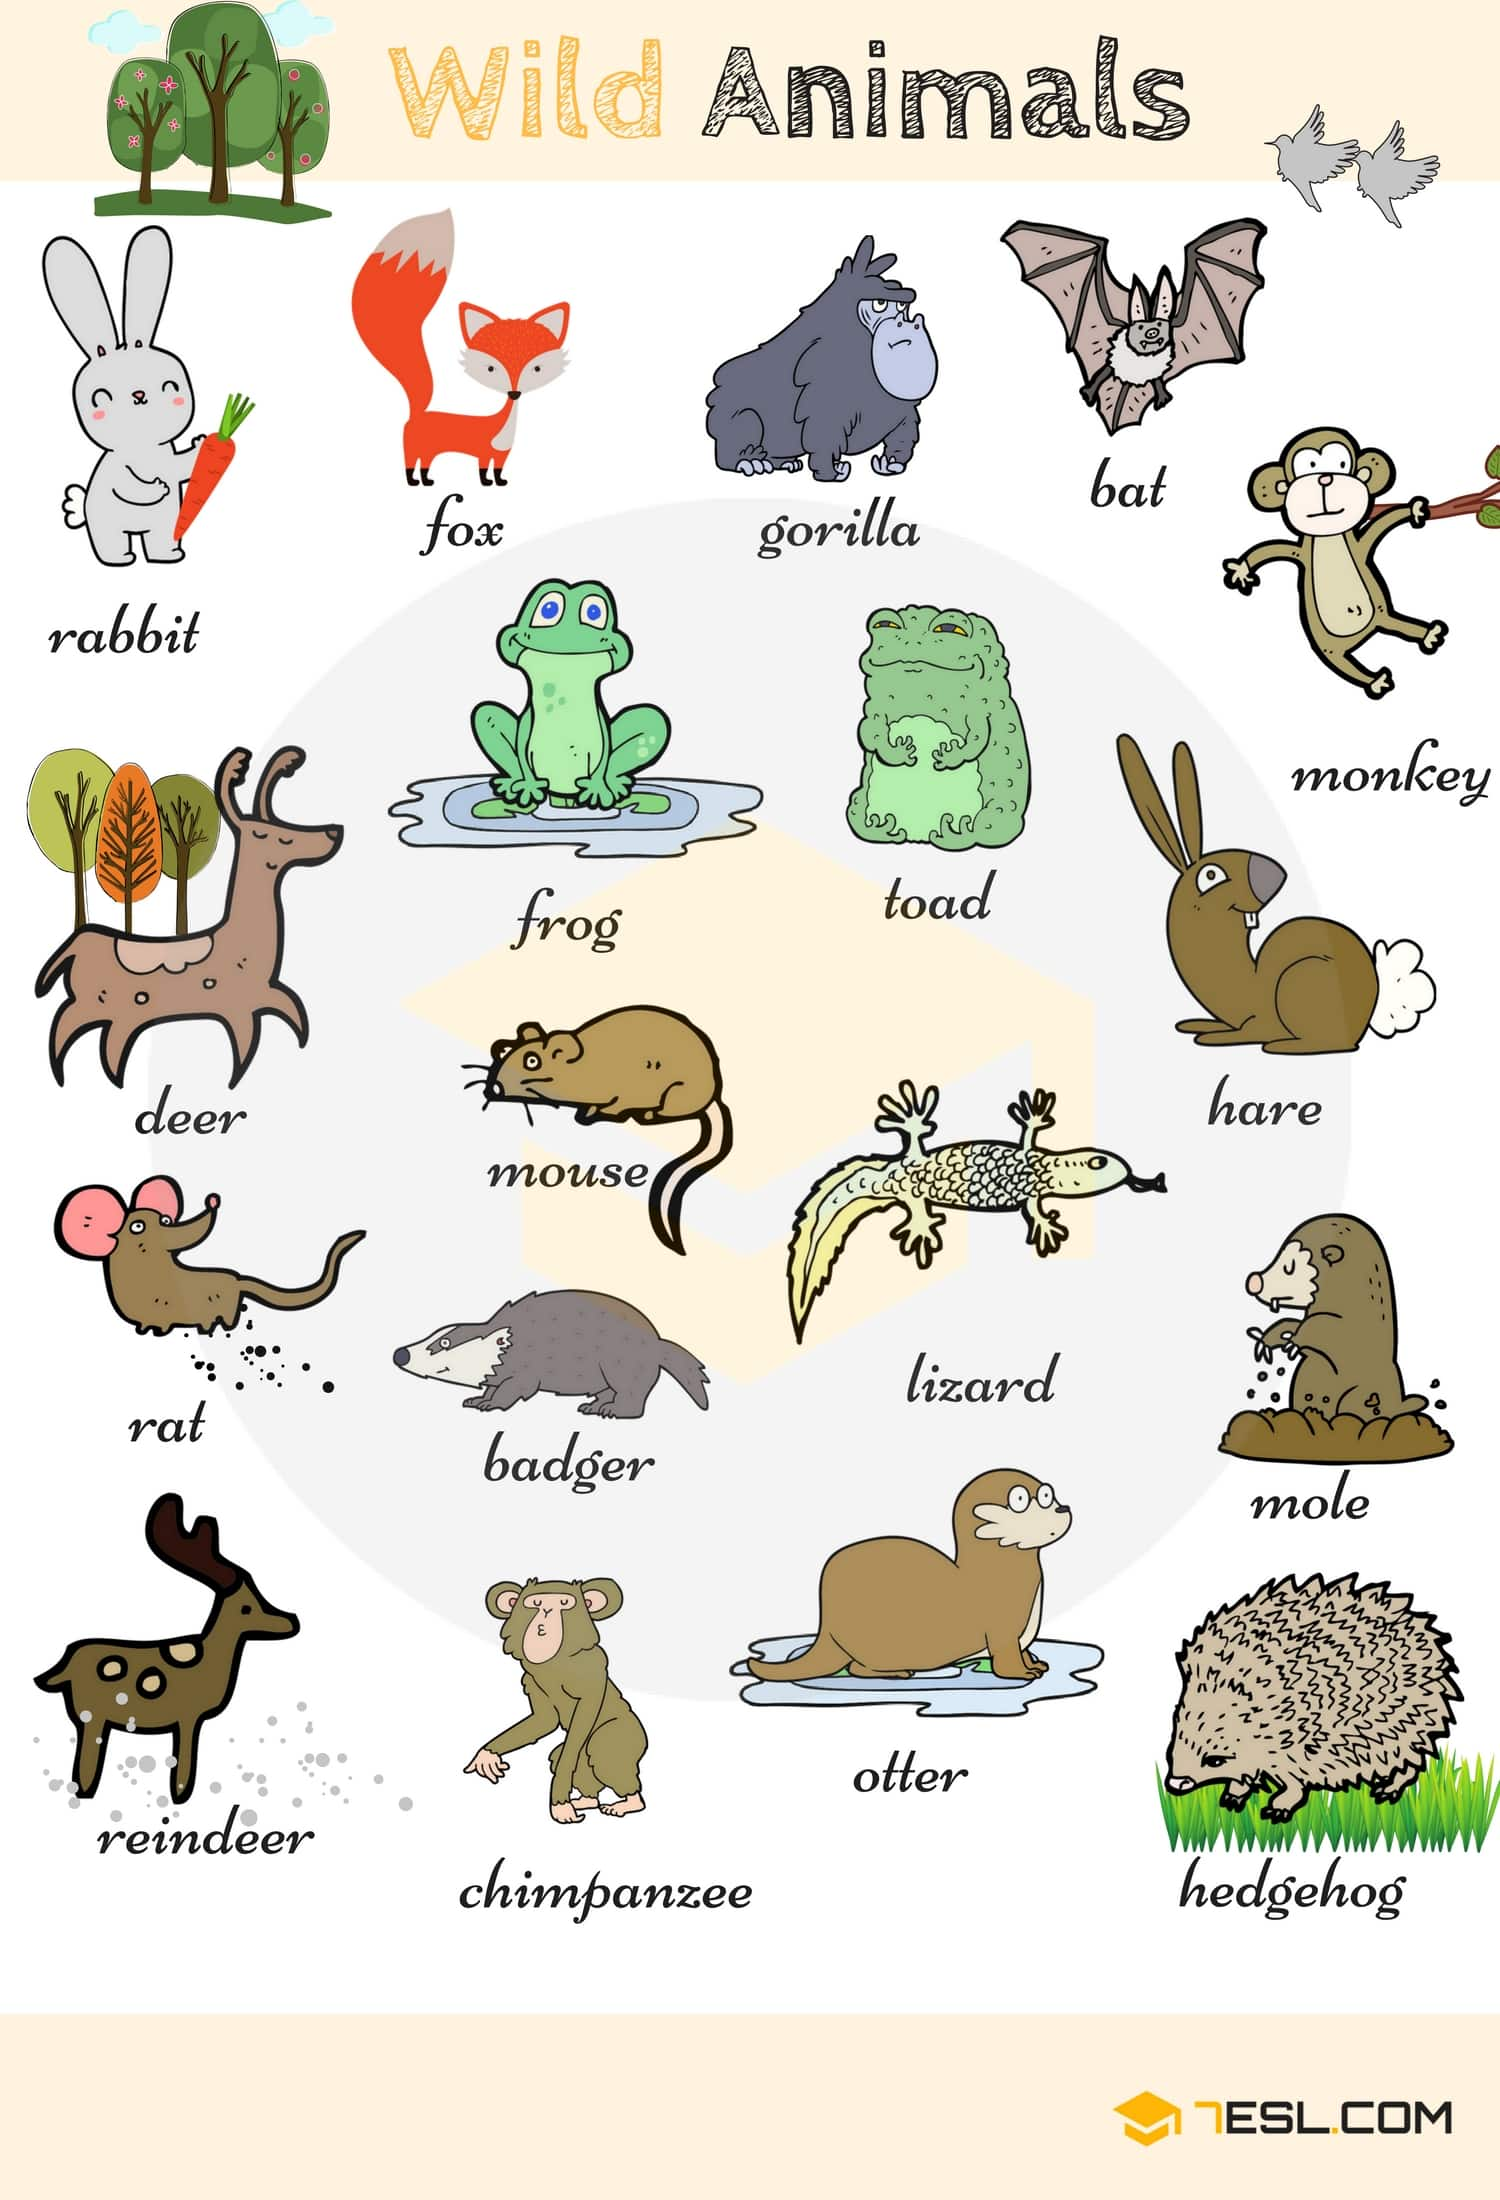 Wild Animal Names | Image 1